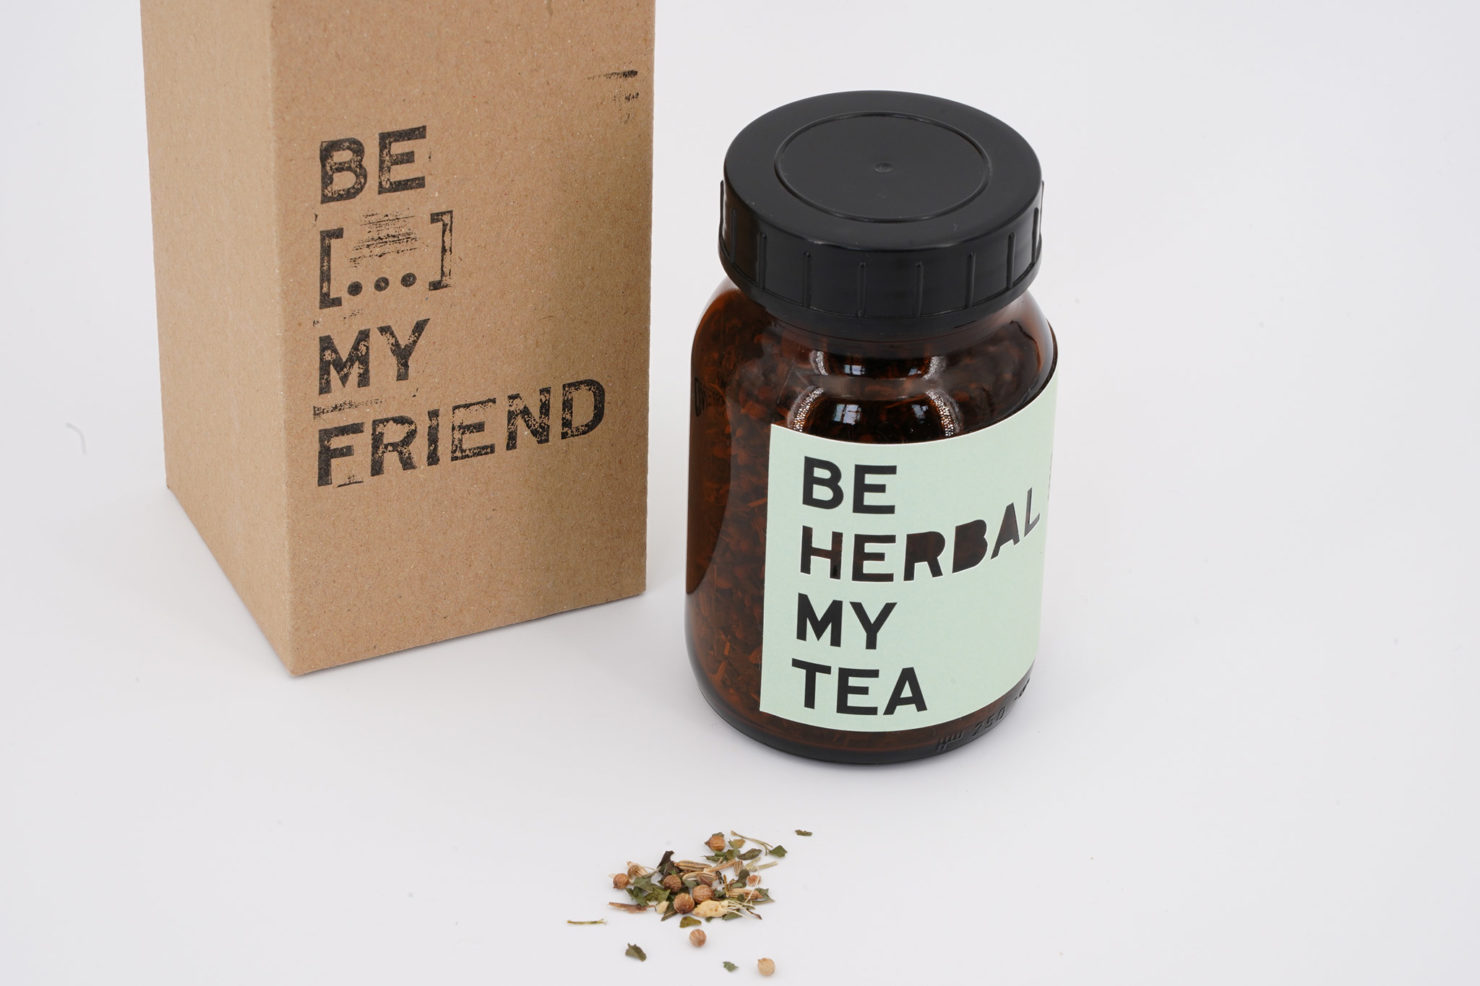 BE HERBAL MY TEA 50G BE MY FRIEND